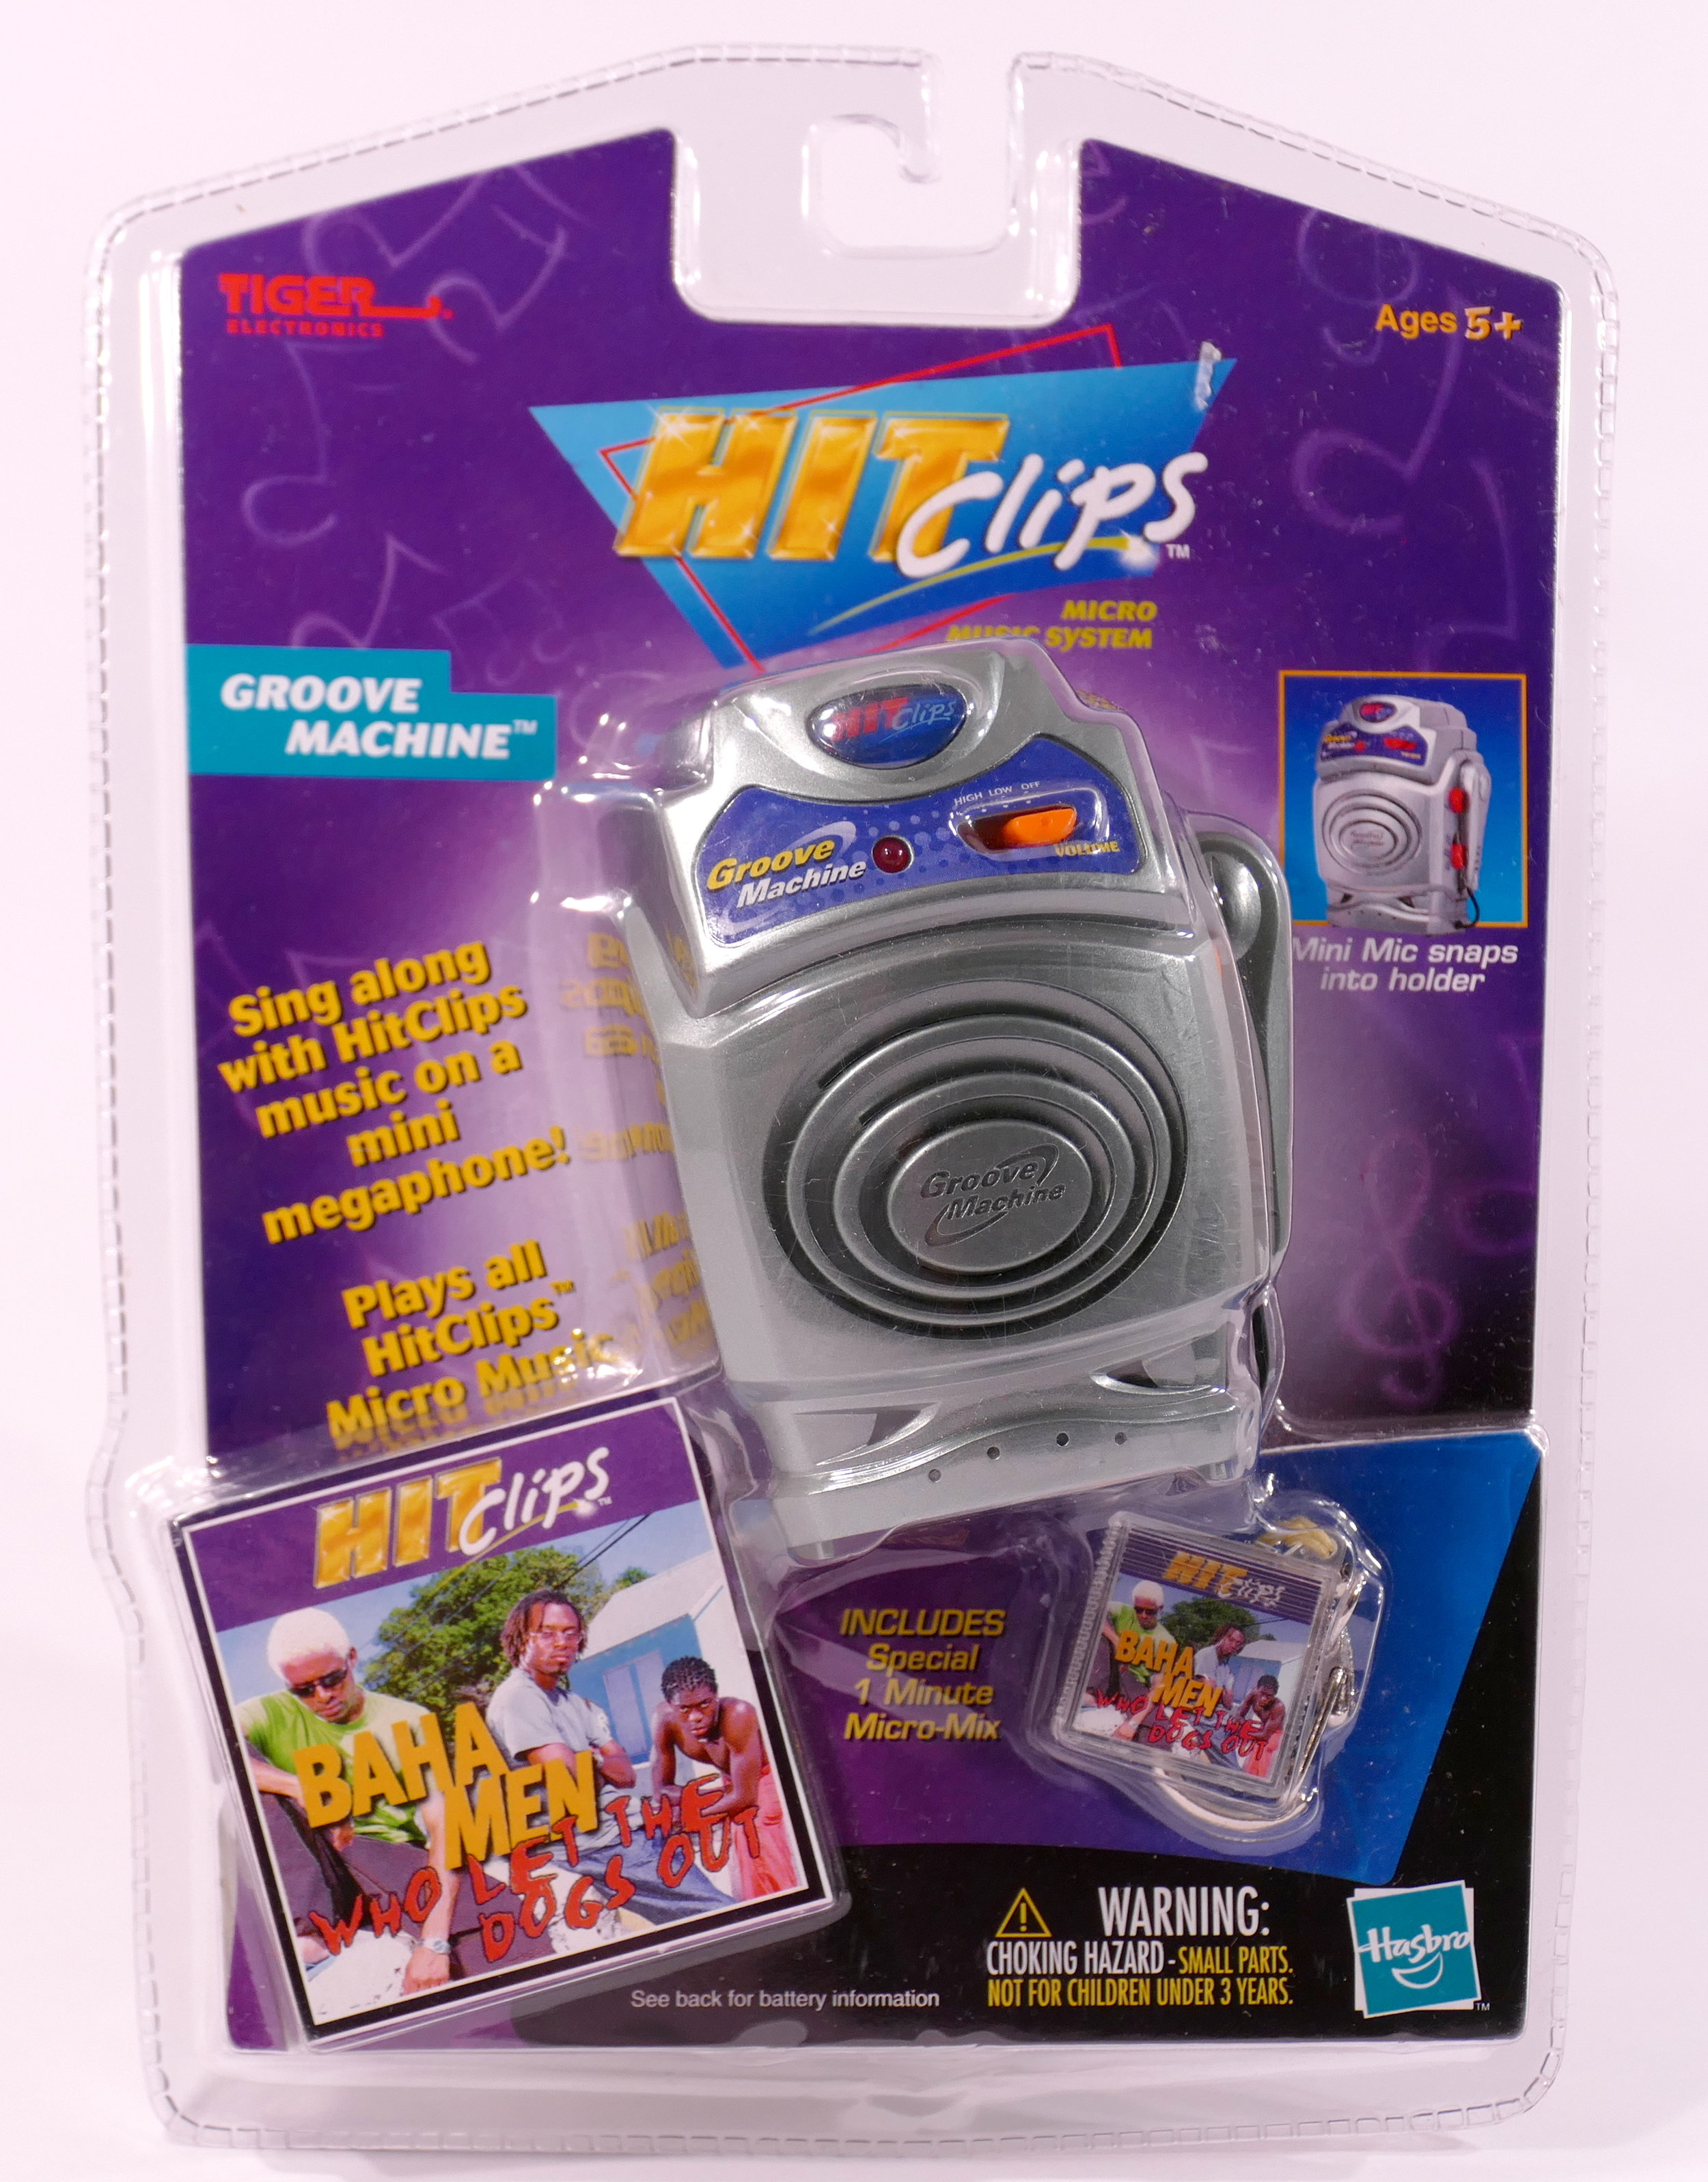 WLWLTDOO-2001-TOY-HITCLIPS-GROOVE-FRONT.JPG